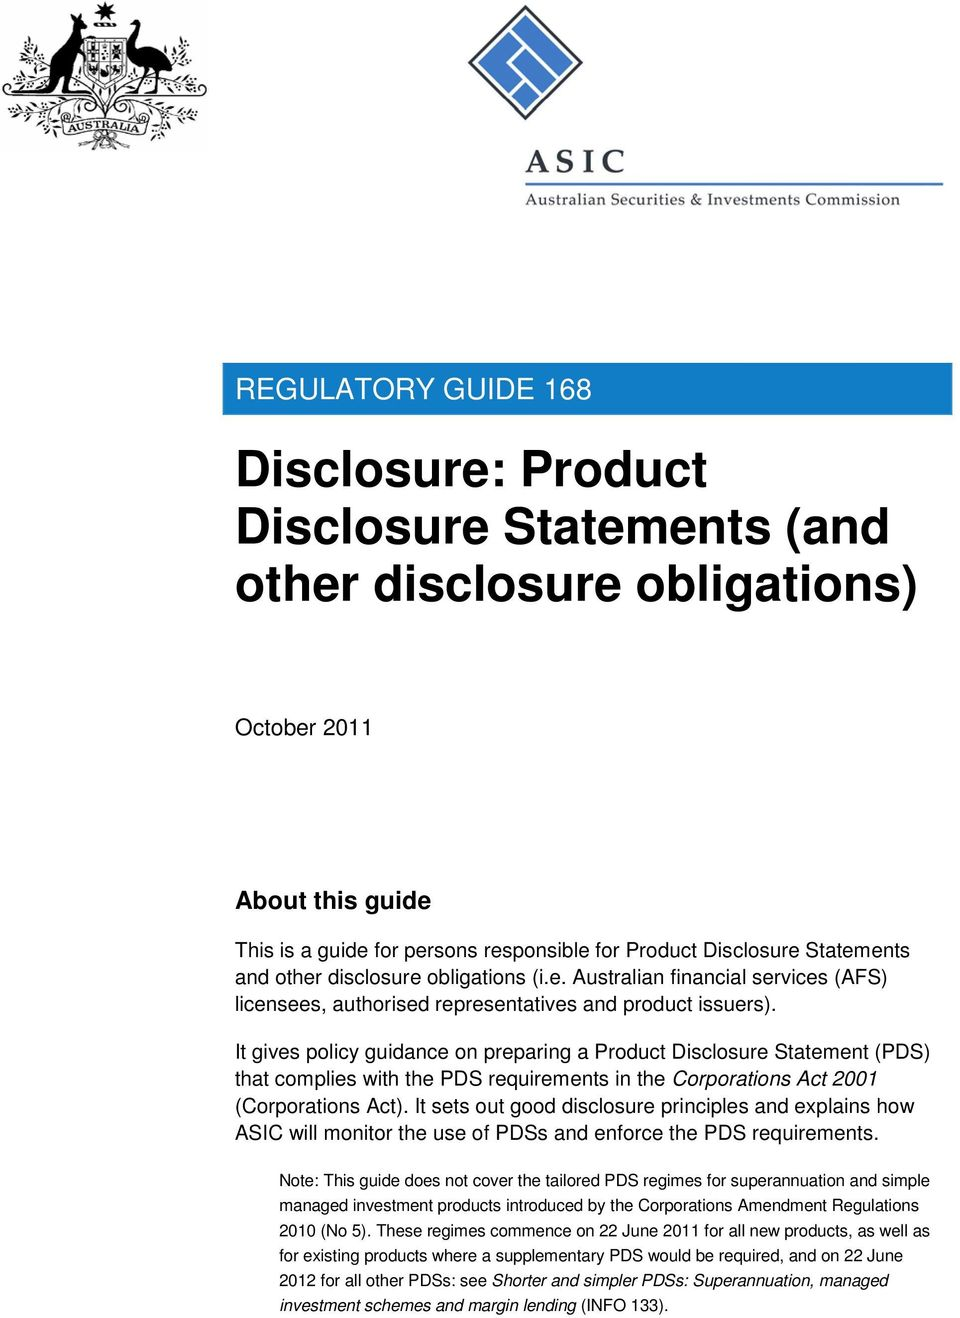 It gives policy guidance on preparing a Product Disclosure Statement (PDS) that complies with the PDS requirements in the Corporations Act 2001 (Corporations Act).